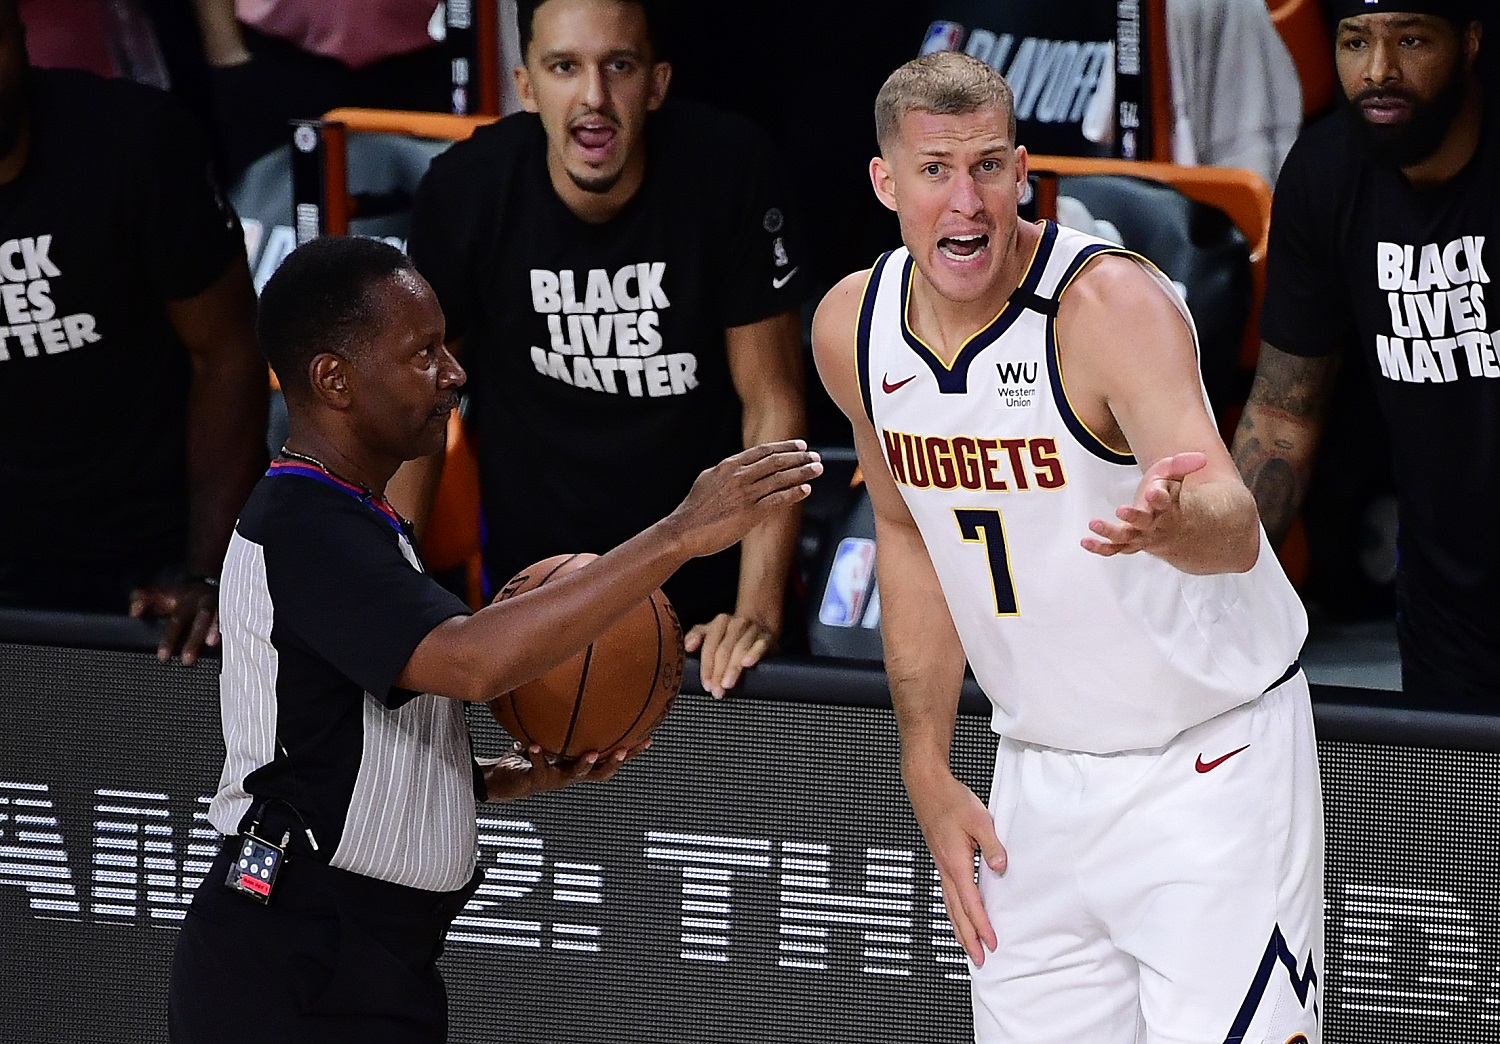 Mason Plumlee Is Getting Torched for His Defense on Anthony Davis' Game-Winning Shot but He Might Not Be the One To Blame